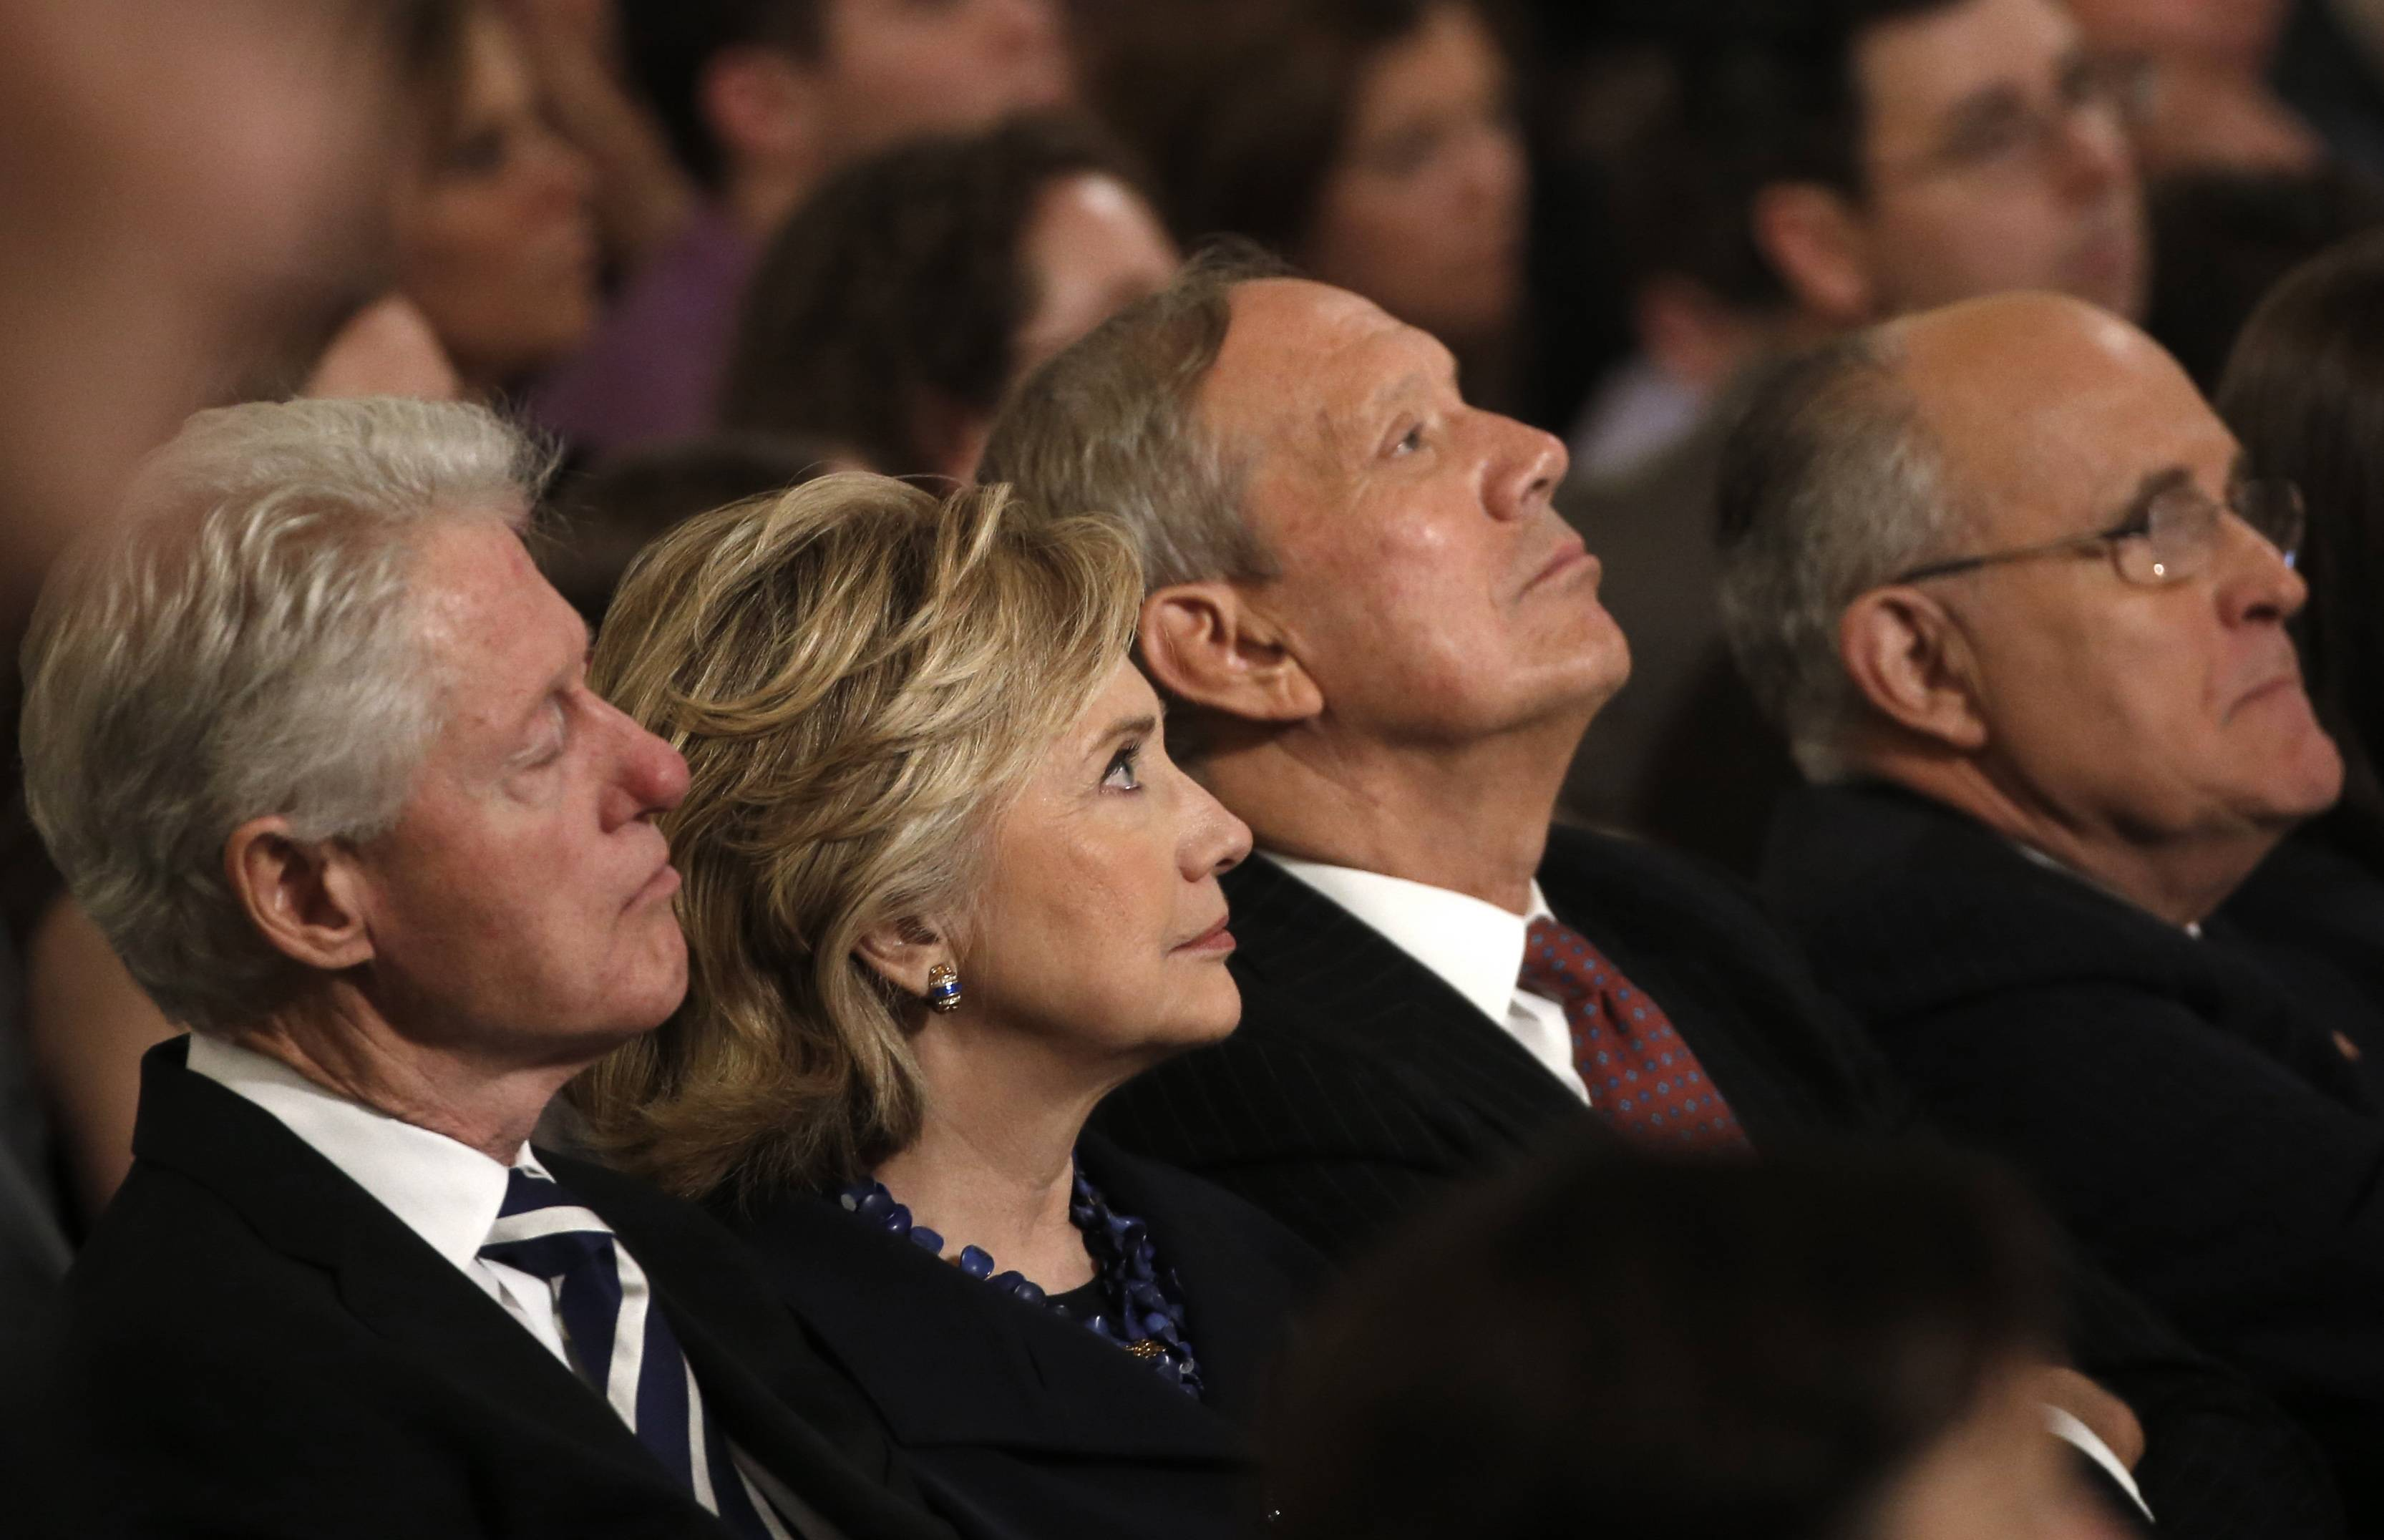 From left, Former U.S. President Bill Clinton sits with his wife former U.S. Secretary of State Hillary Clinton, former New York Governor George Pataki and former New York City Mayor Rudolph Giuliani during the dedication ceremony.